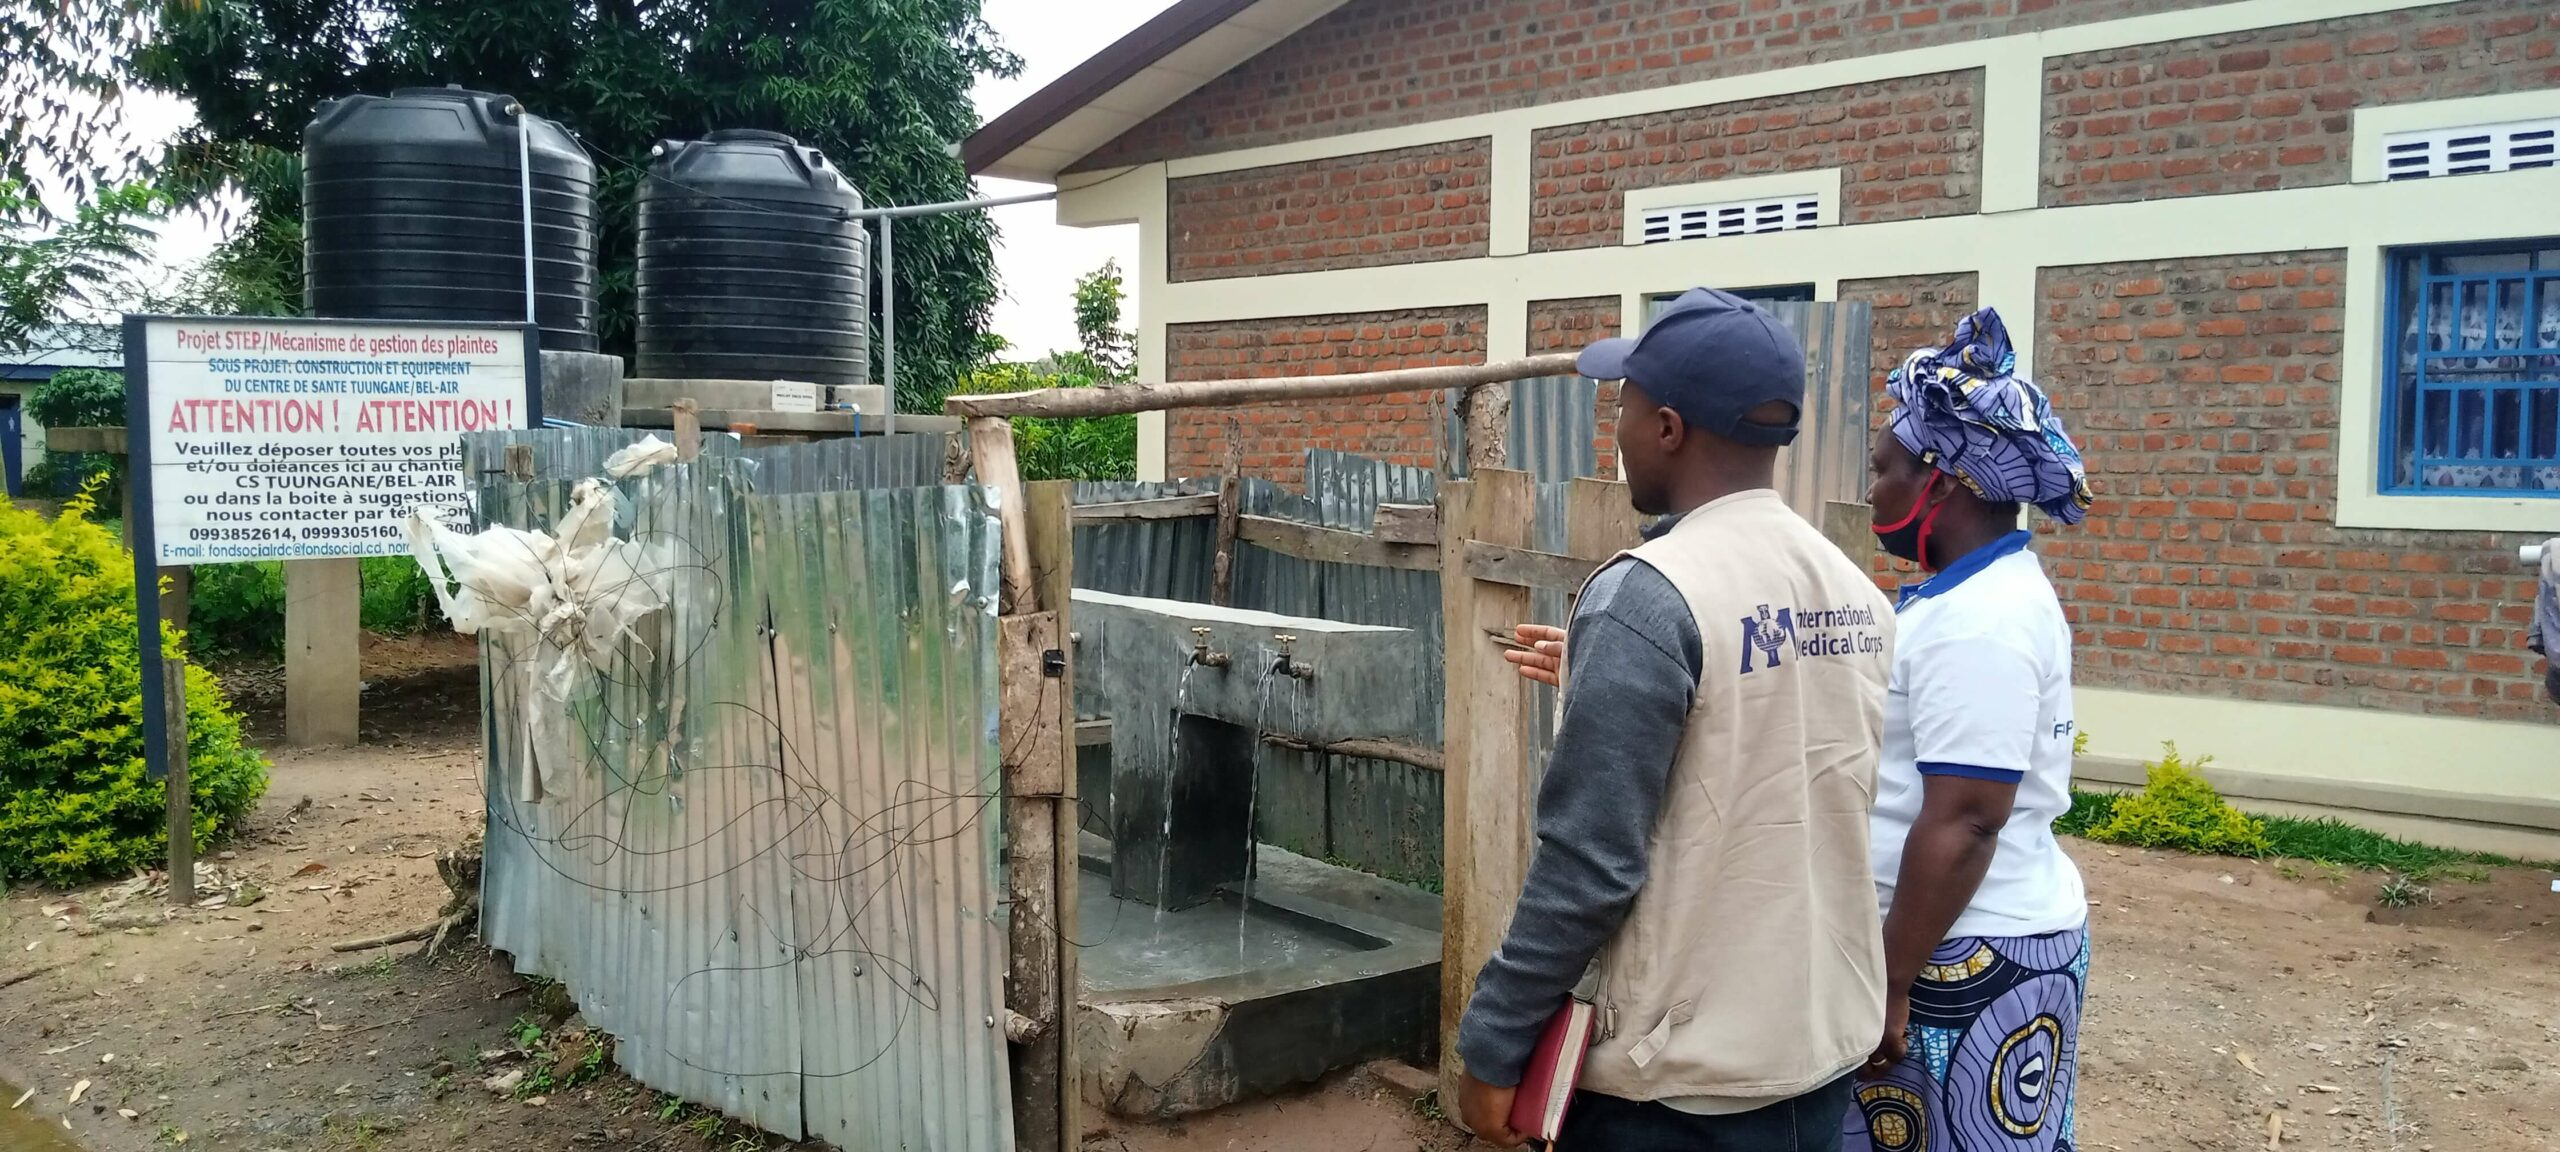 Our team in the Democratic Republic of the Congo (DRC) fitted solar panels and a solar pump at our Ebola Treatment Center in Bikoro.